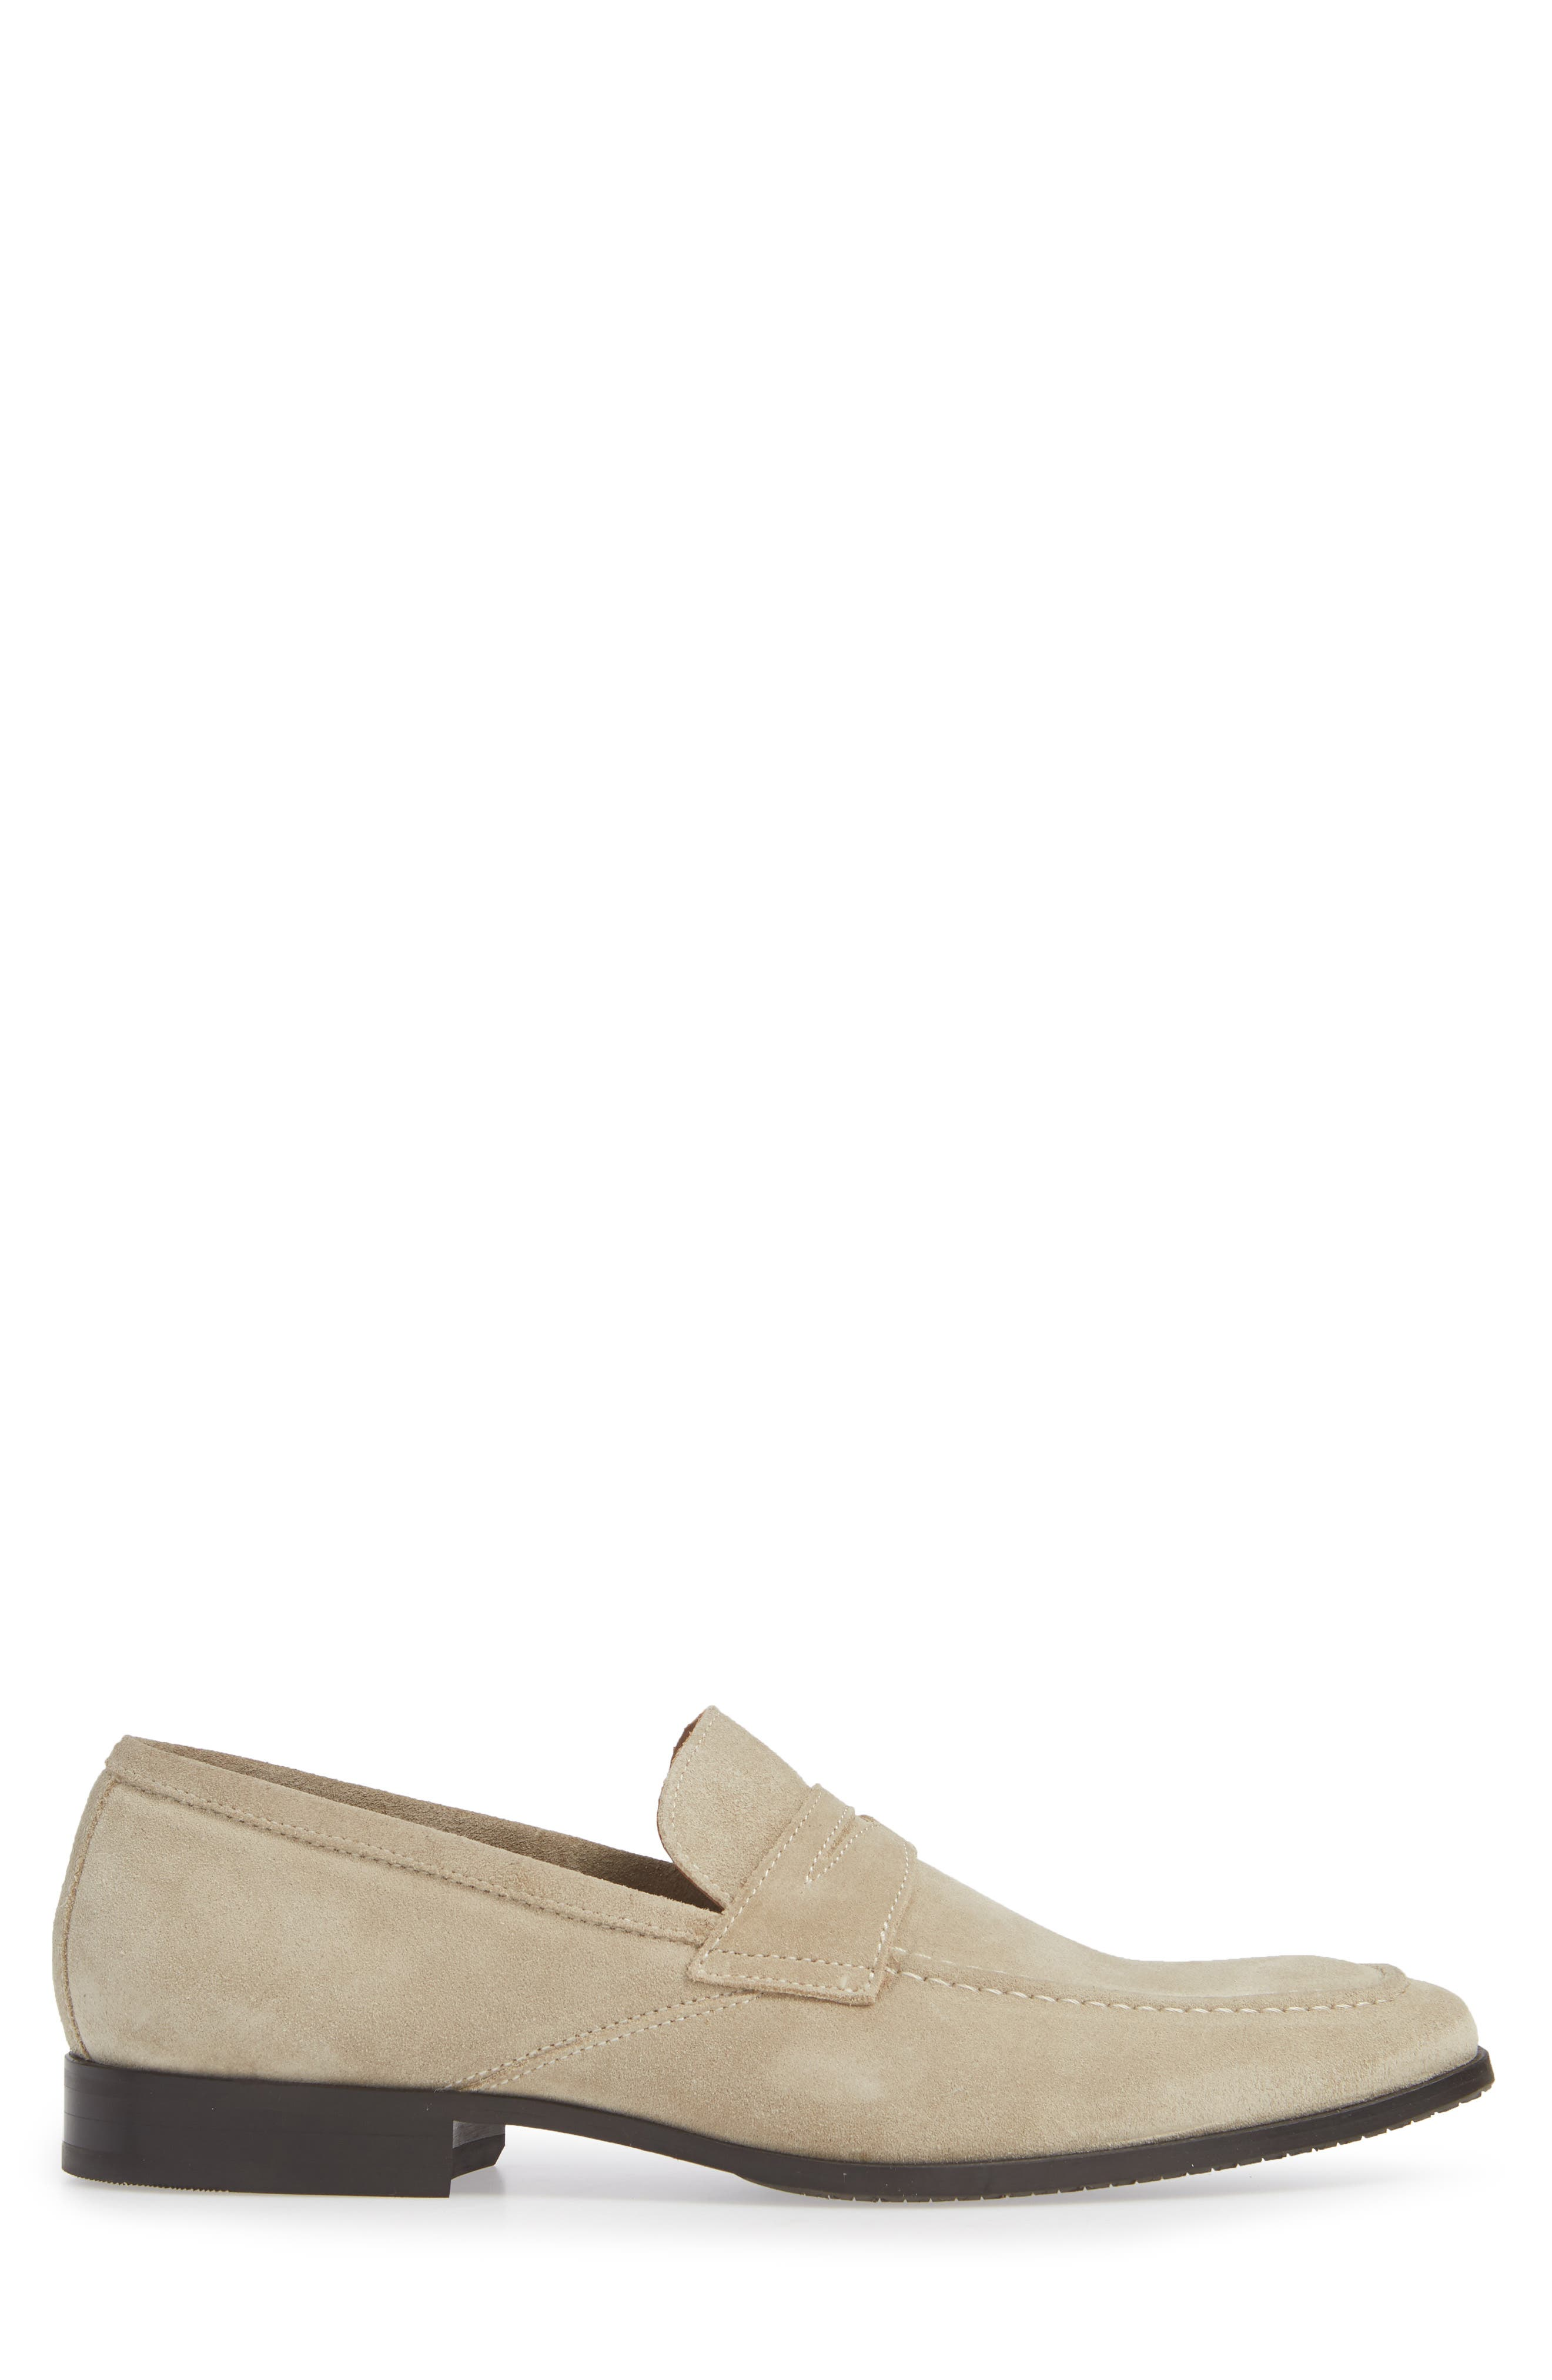 Nicasio Apron Toe Penny Loafer,                             Alternate thumbnail 3, color,                             SAND SUEDE